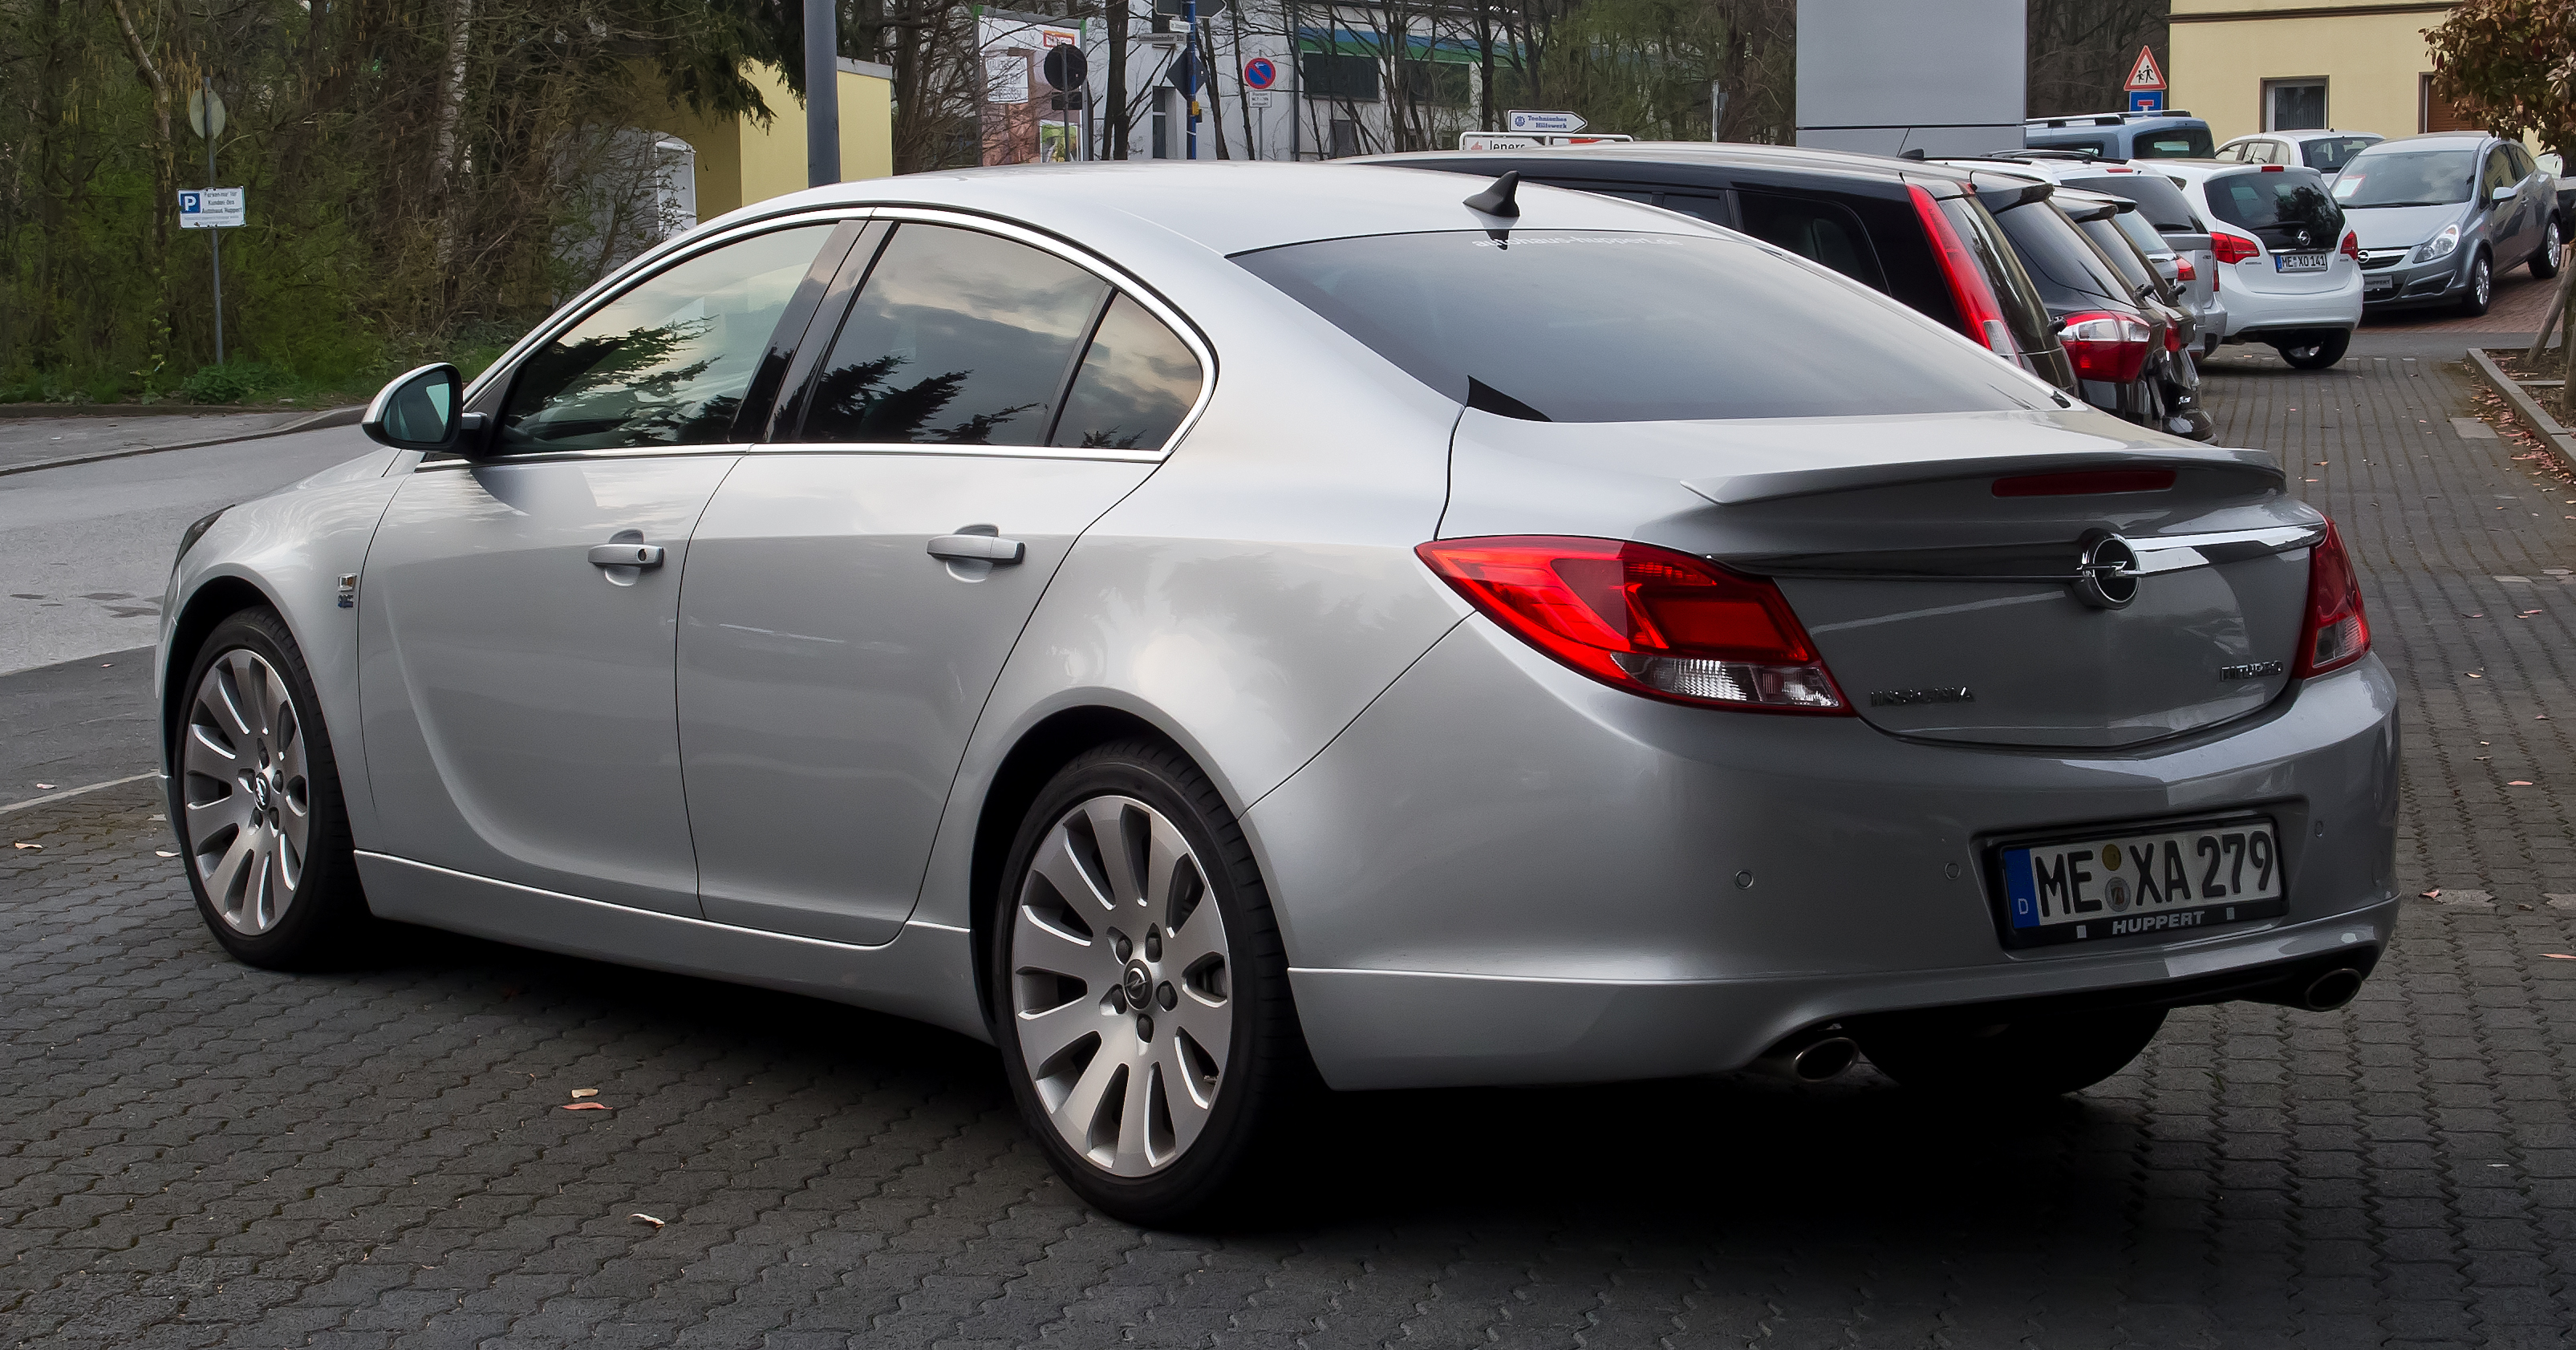 Opel Insignia 20 Biturbo CDTI technical details history photos